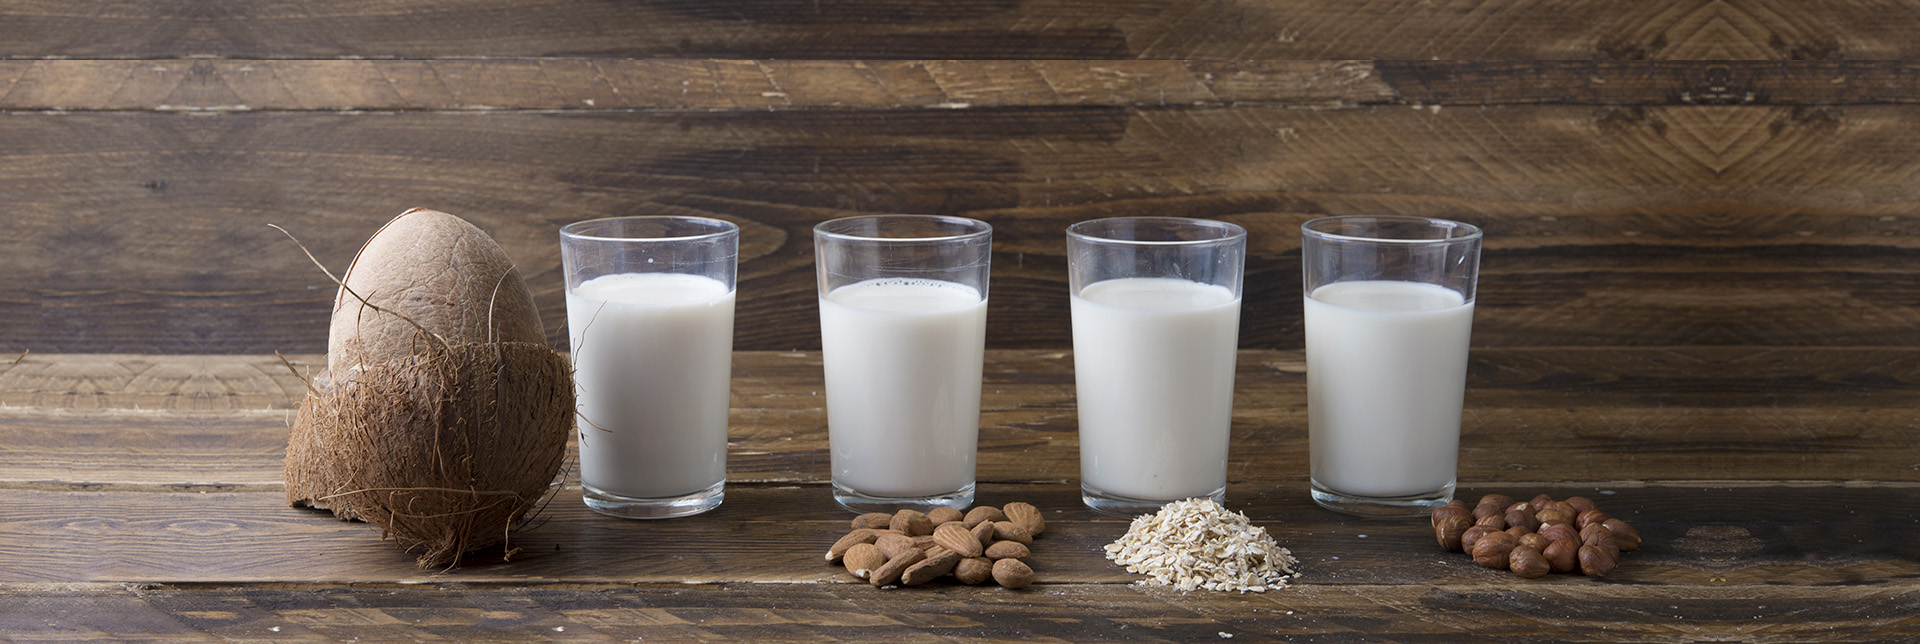 Plant-Based Milk Alternatives | Environmental Footprints